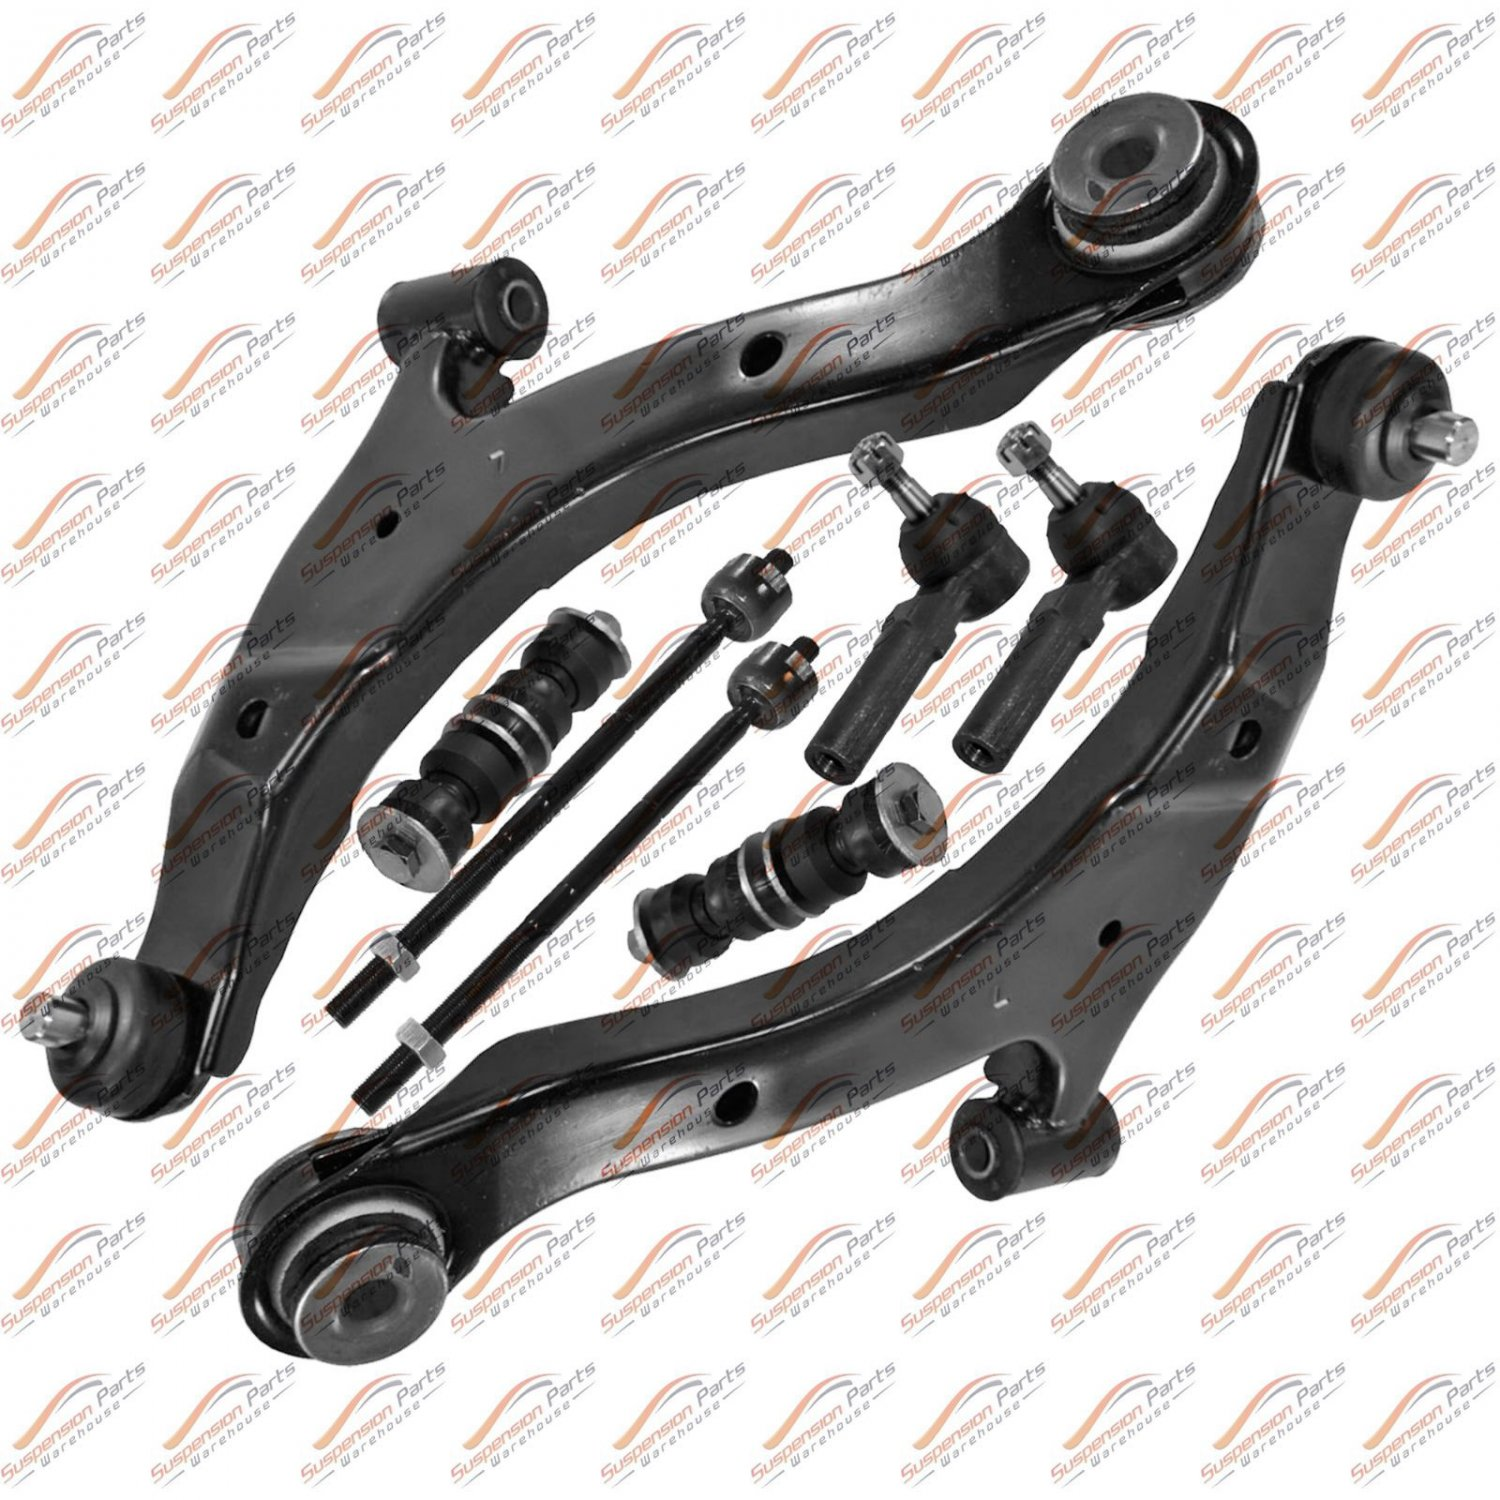 Control Arm and Ball Joint Assembly - Suspension Kit Chrysler PT Crusier 01-10